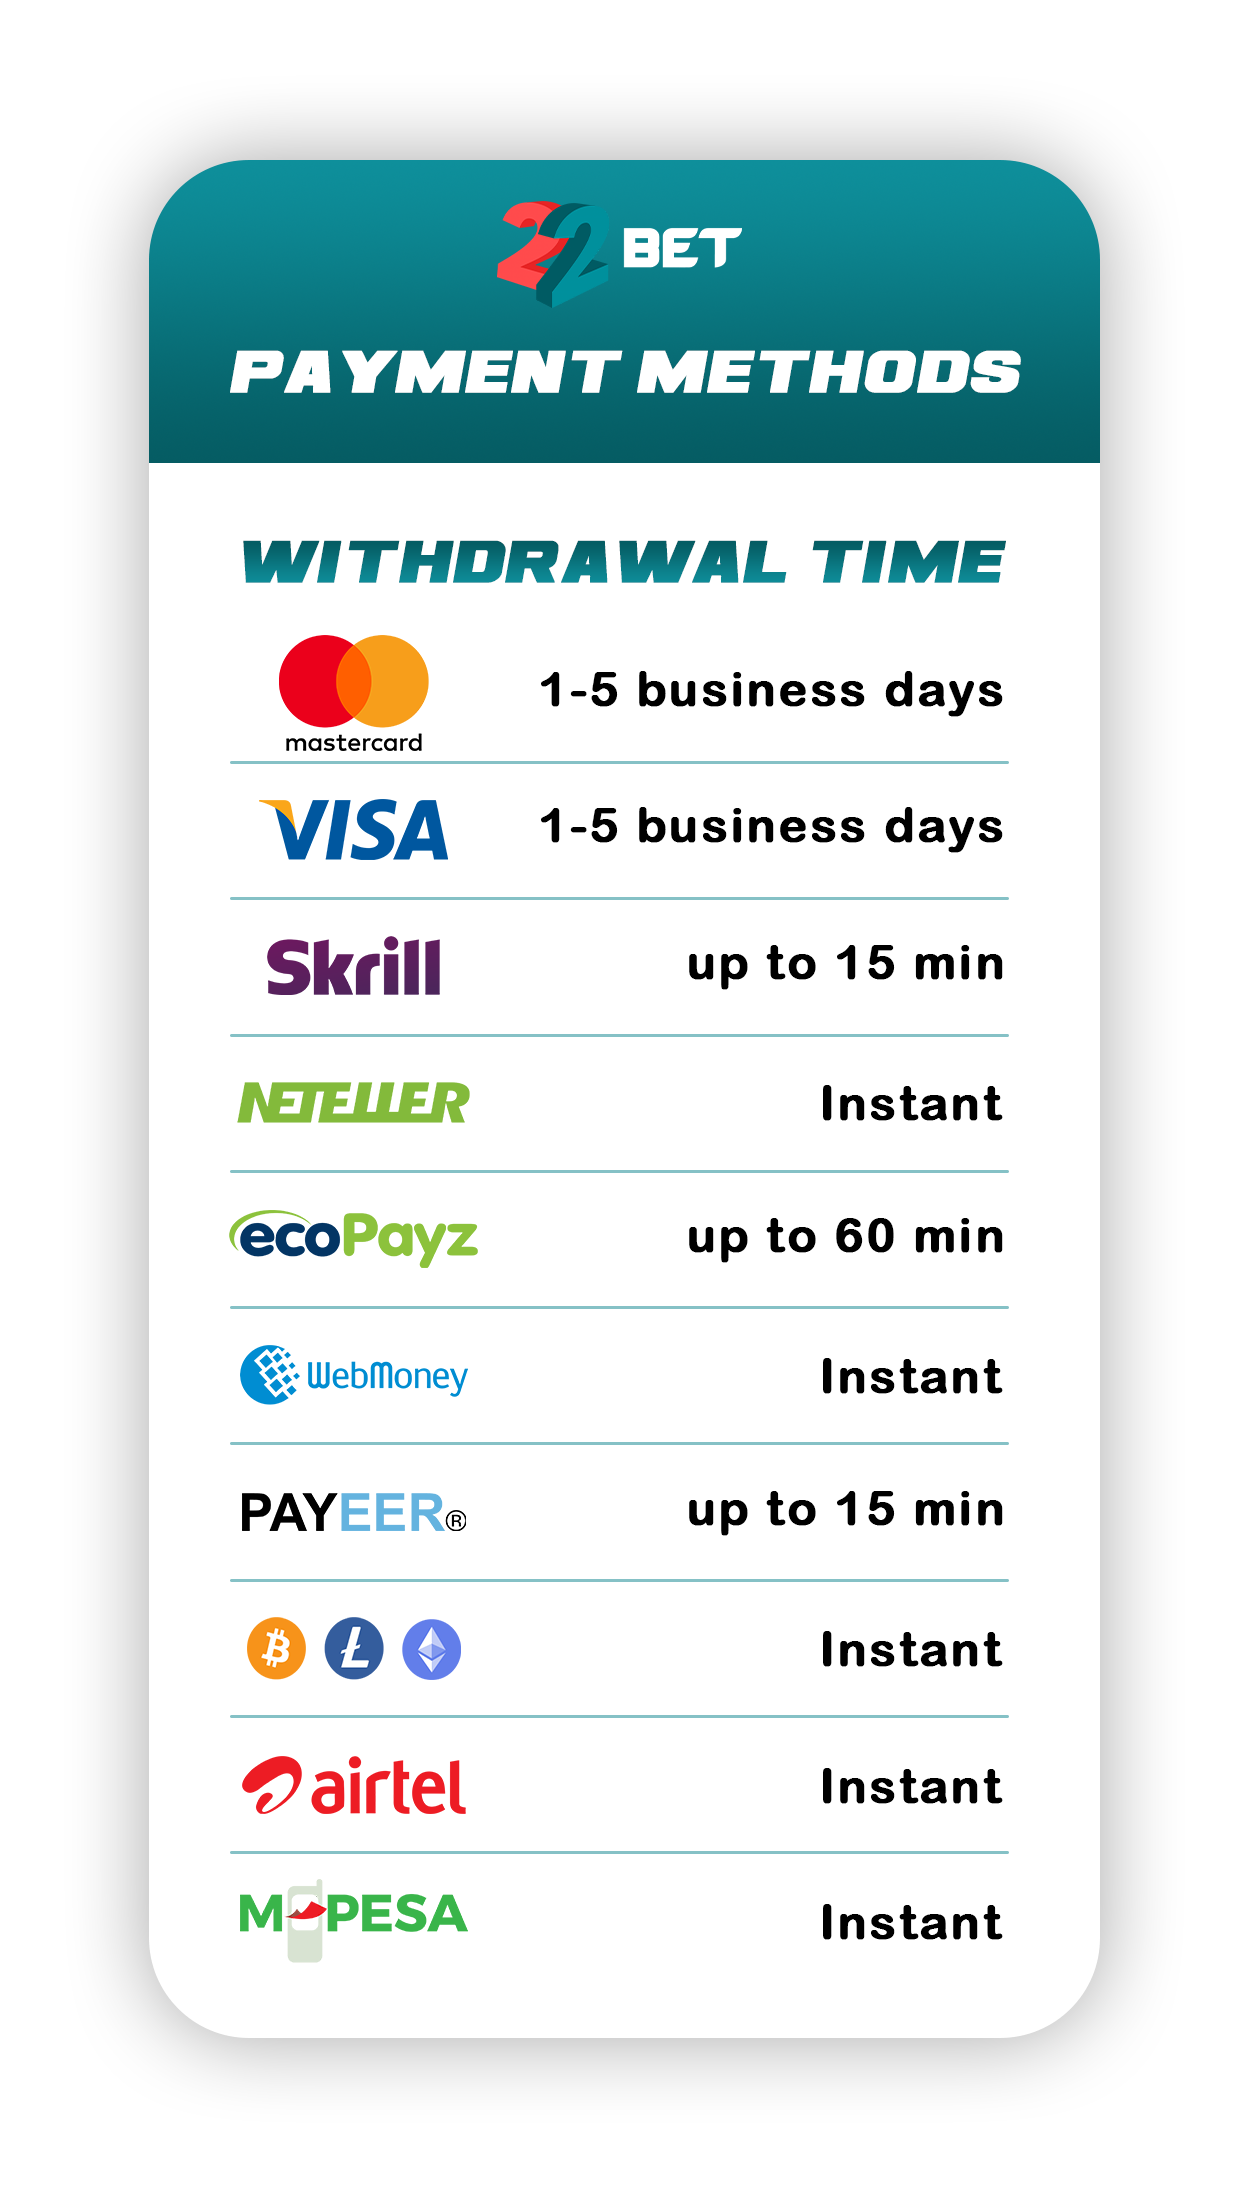 22Bet withdrawal times for different payment methods.